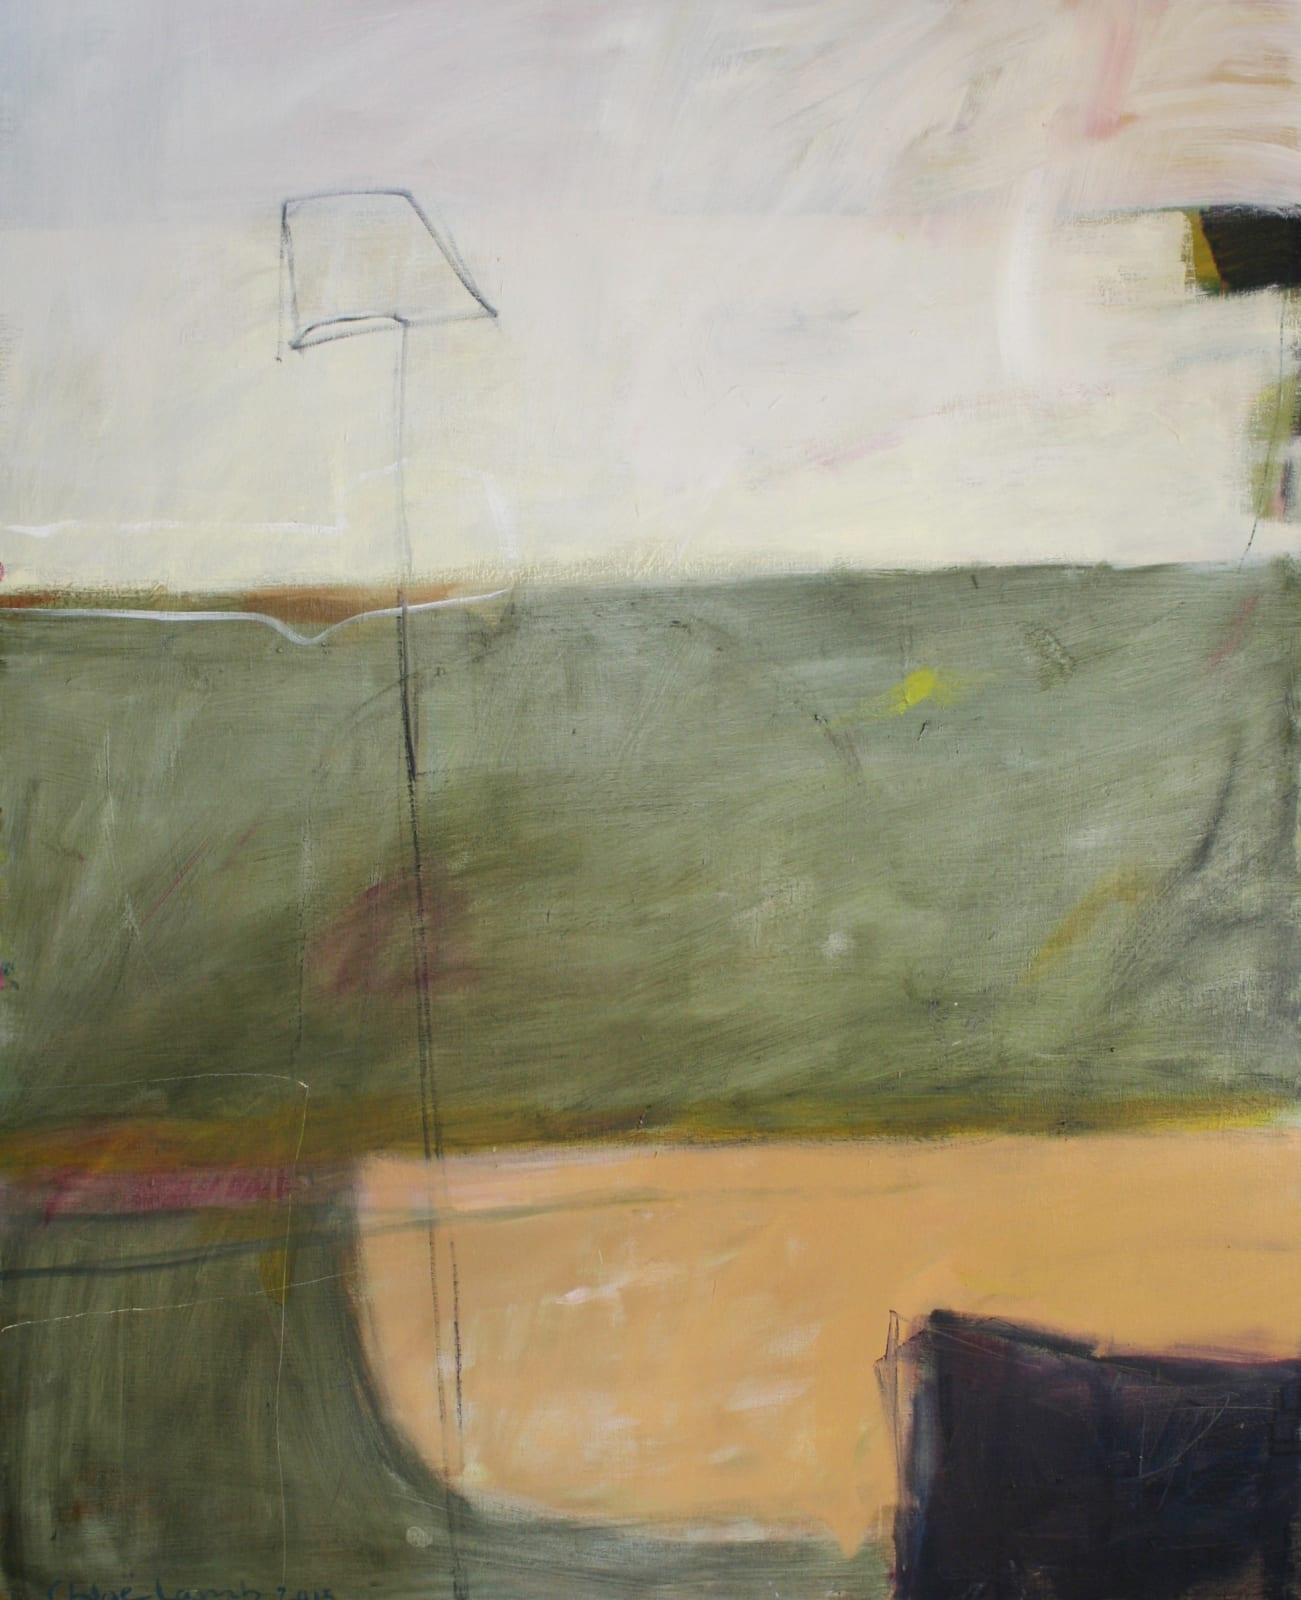 Chloe Lamb Amble September 2015 Signed Oil on canvas 59 7/8 x 48 1/8 in 152.1 x 122.2 cms